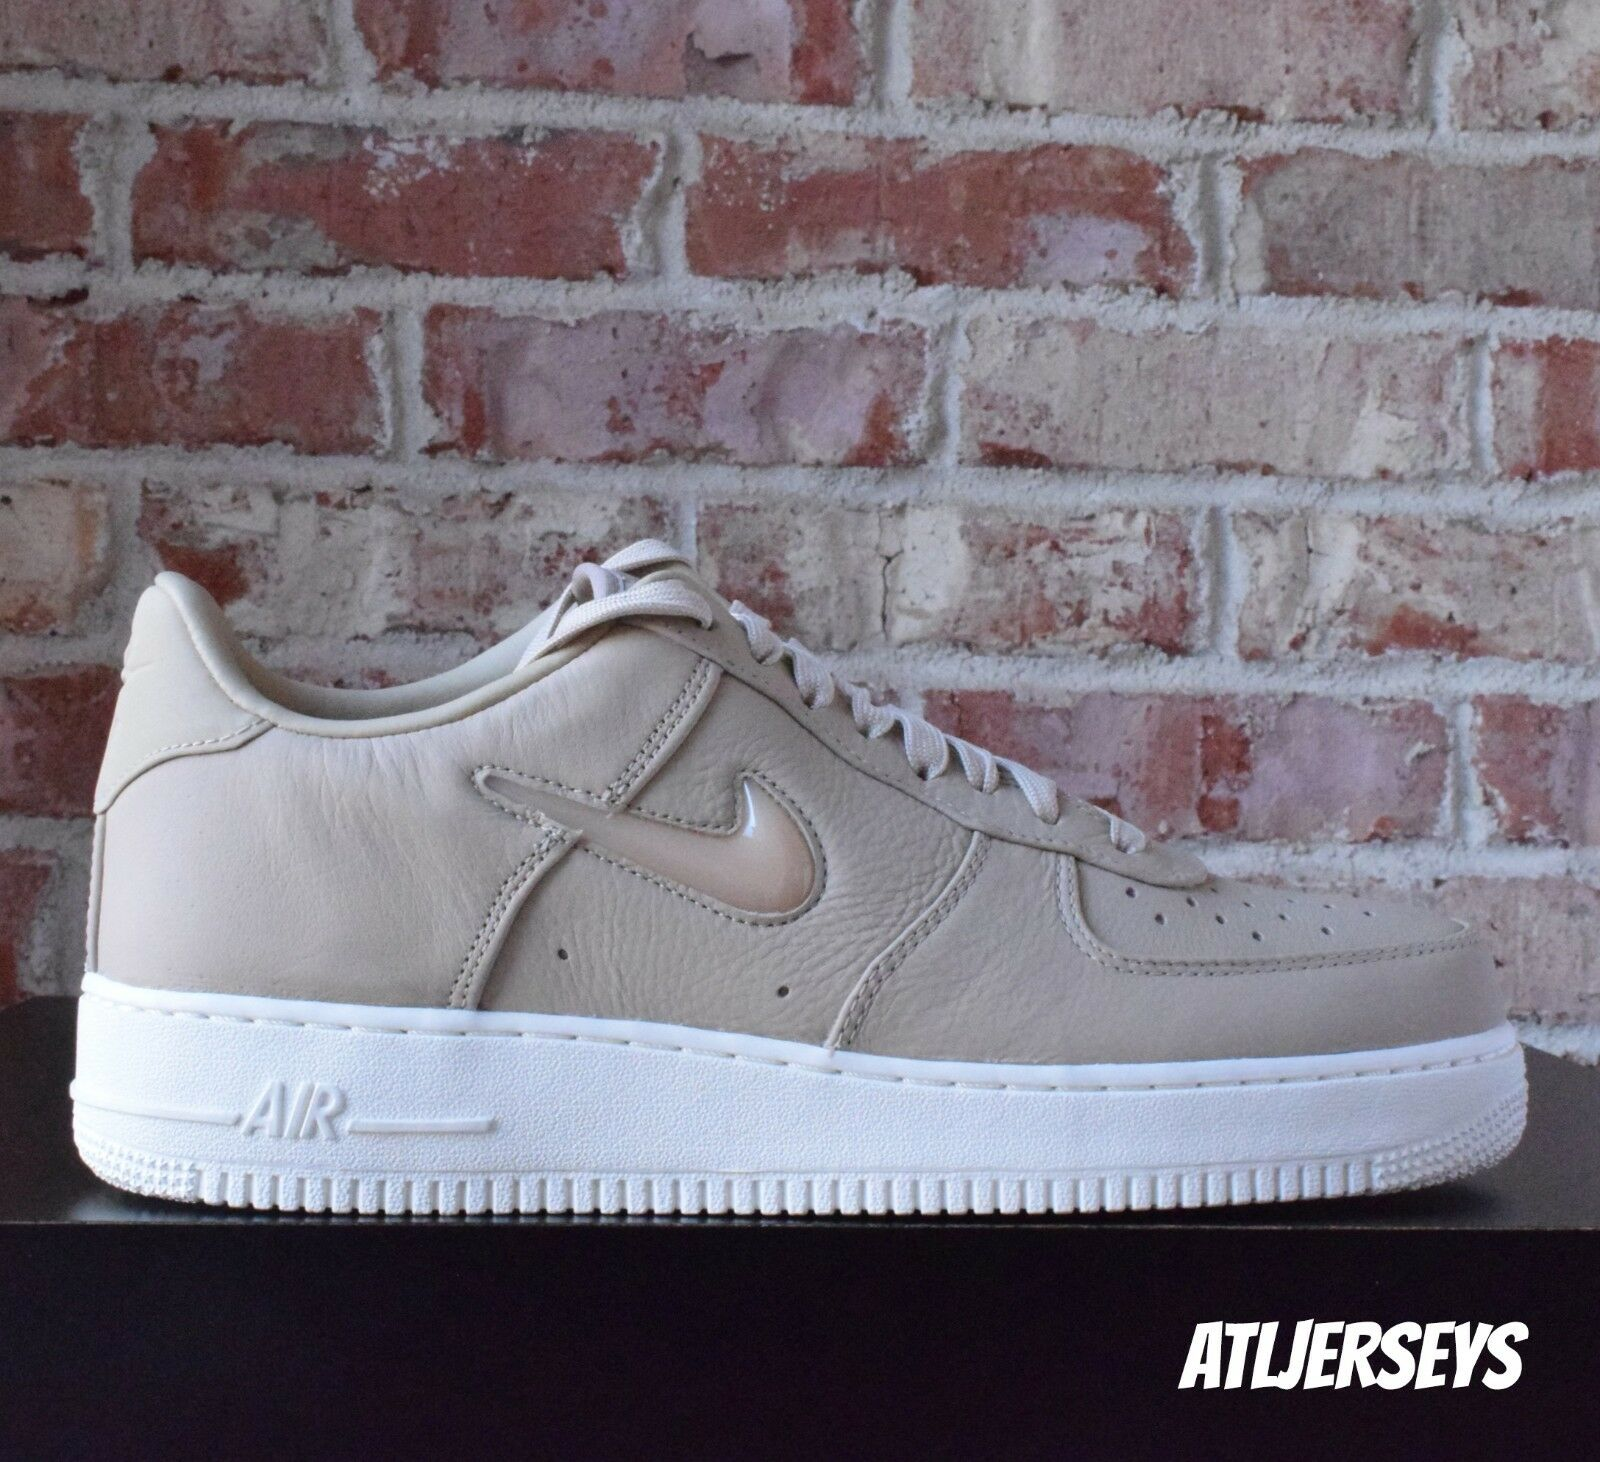 Nike Air Force 1 Retro PRM JEWEL Mushroom Sail Tan 941912-200